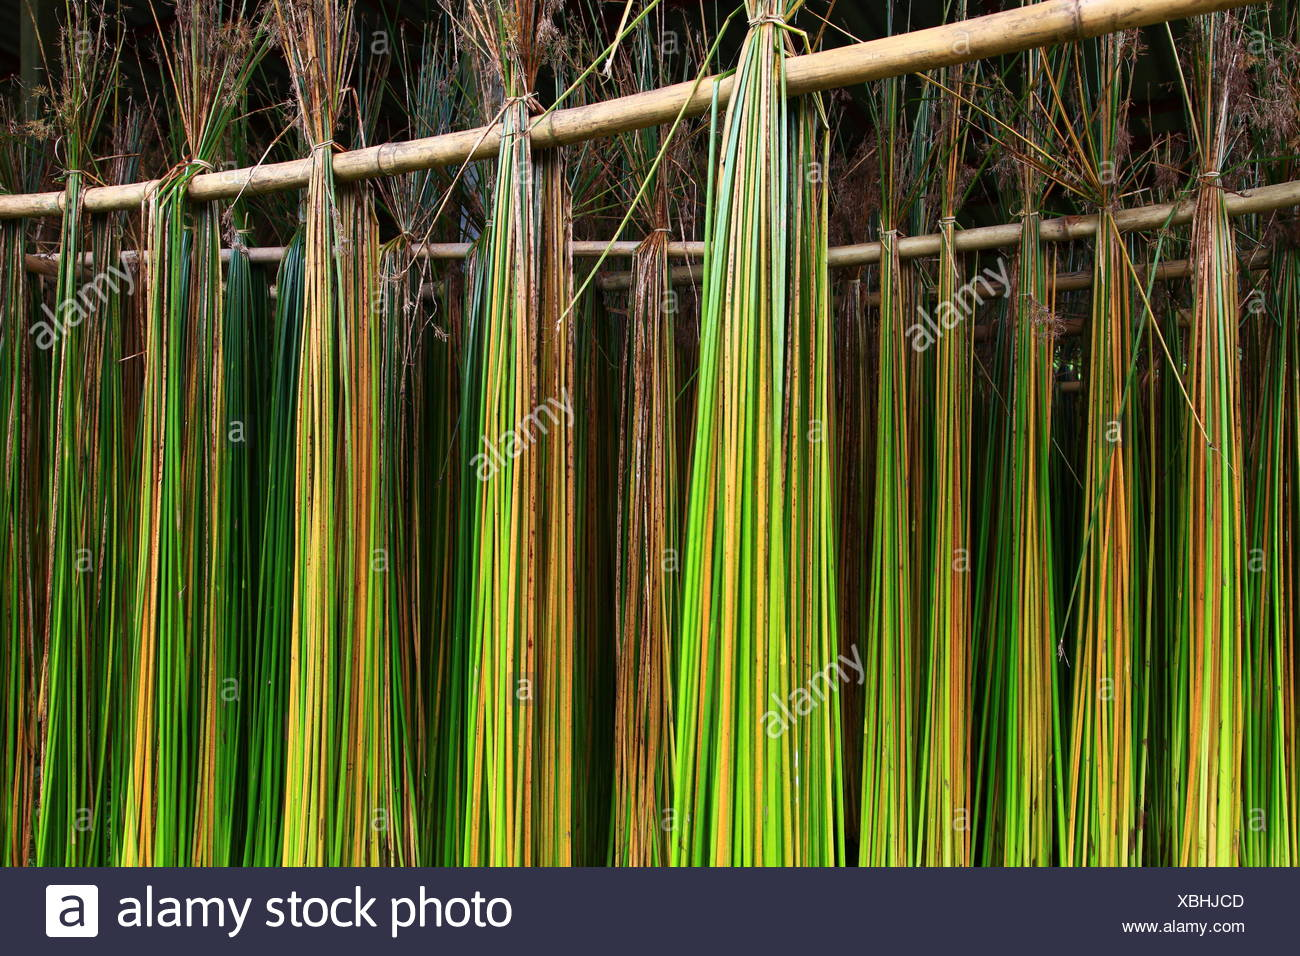 dry reed mats hanging hang up green agriculture farming